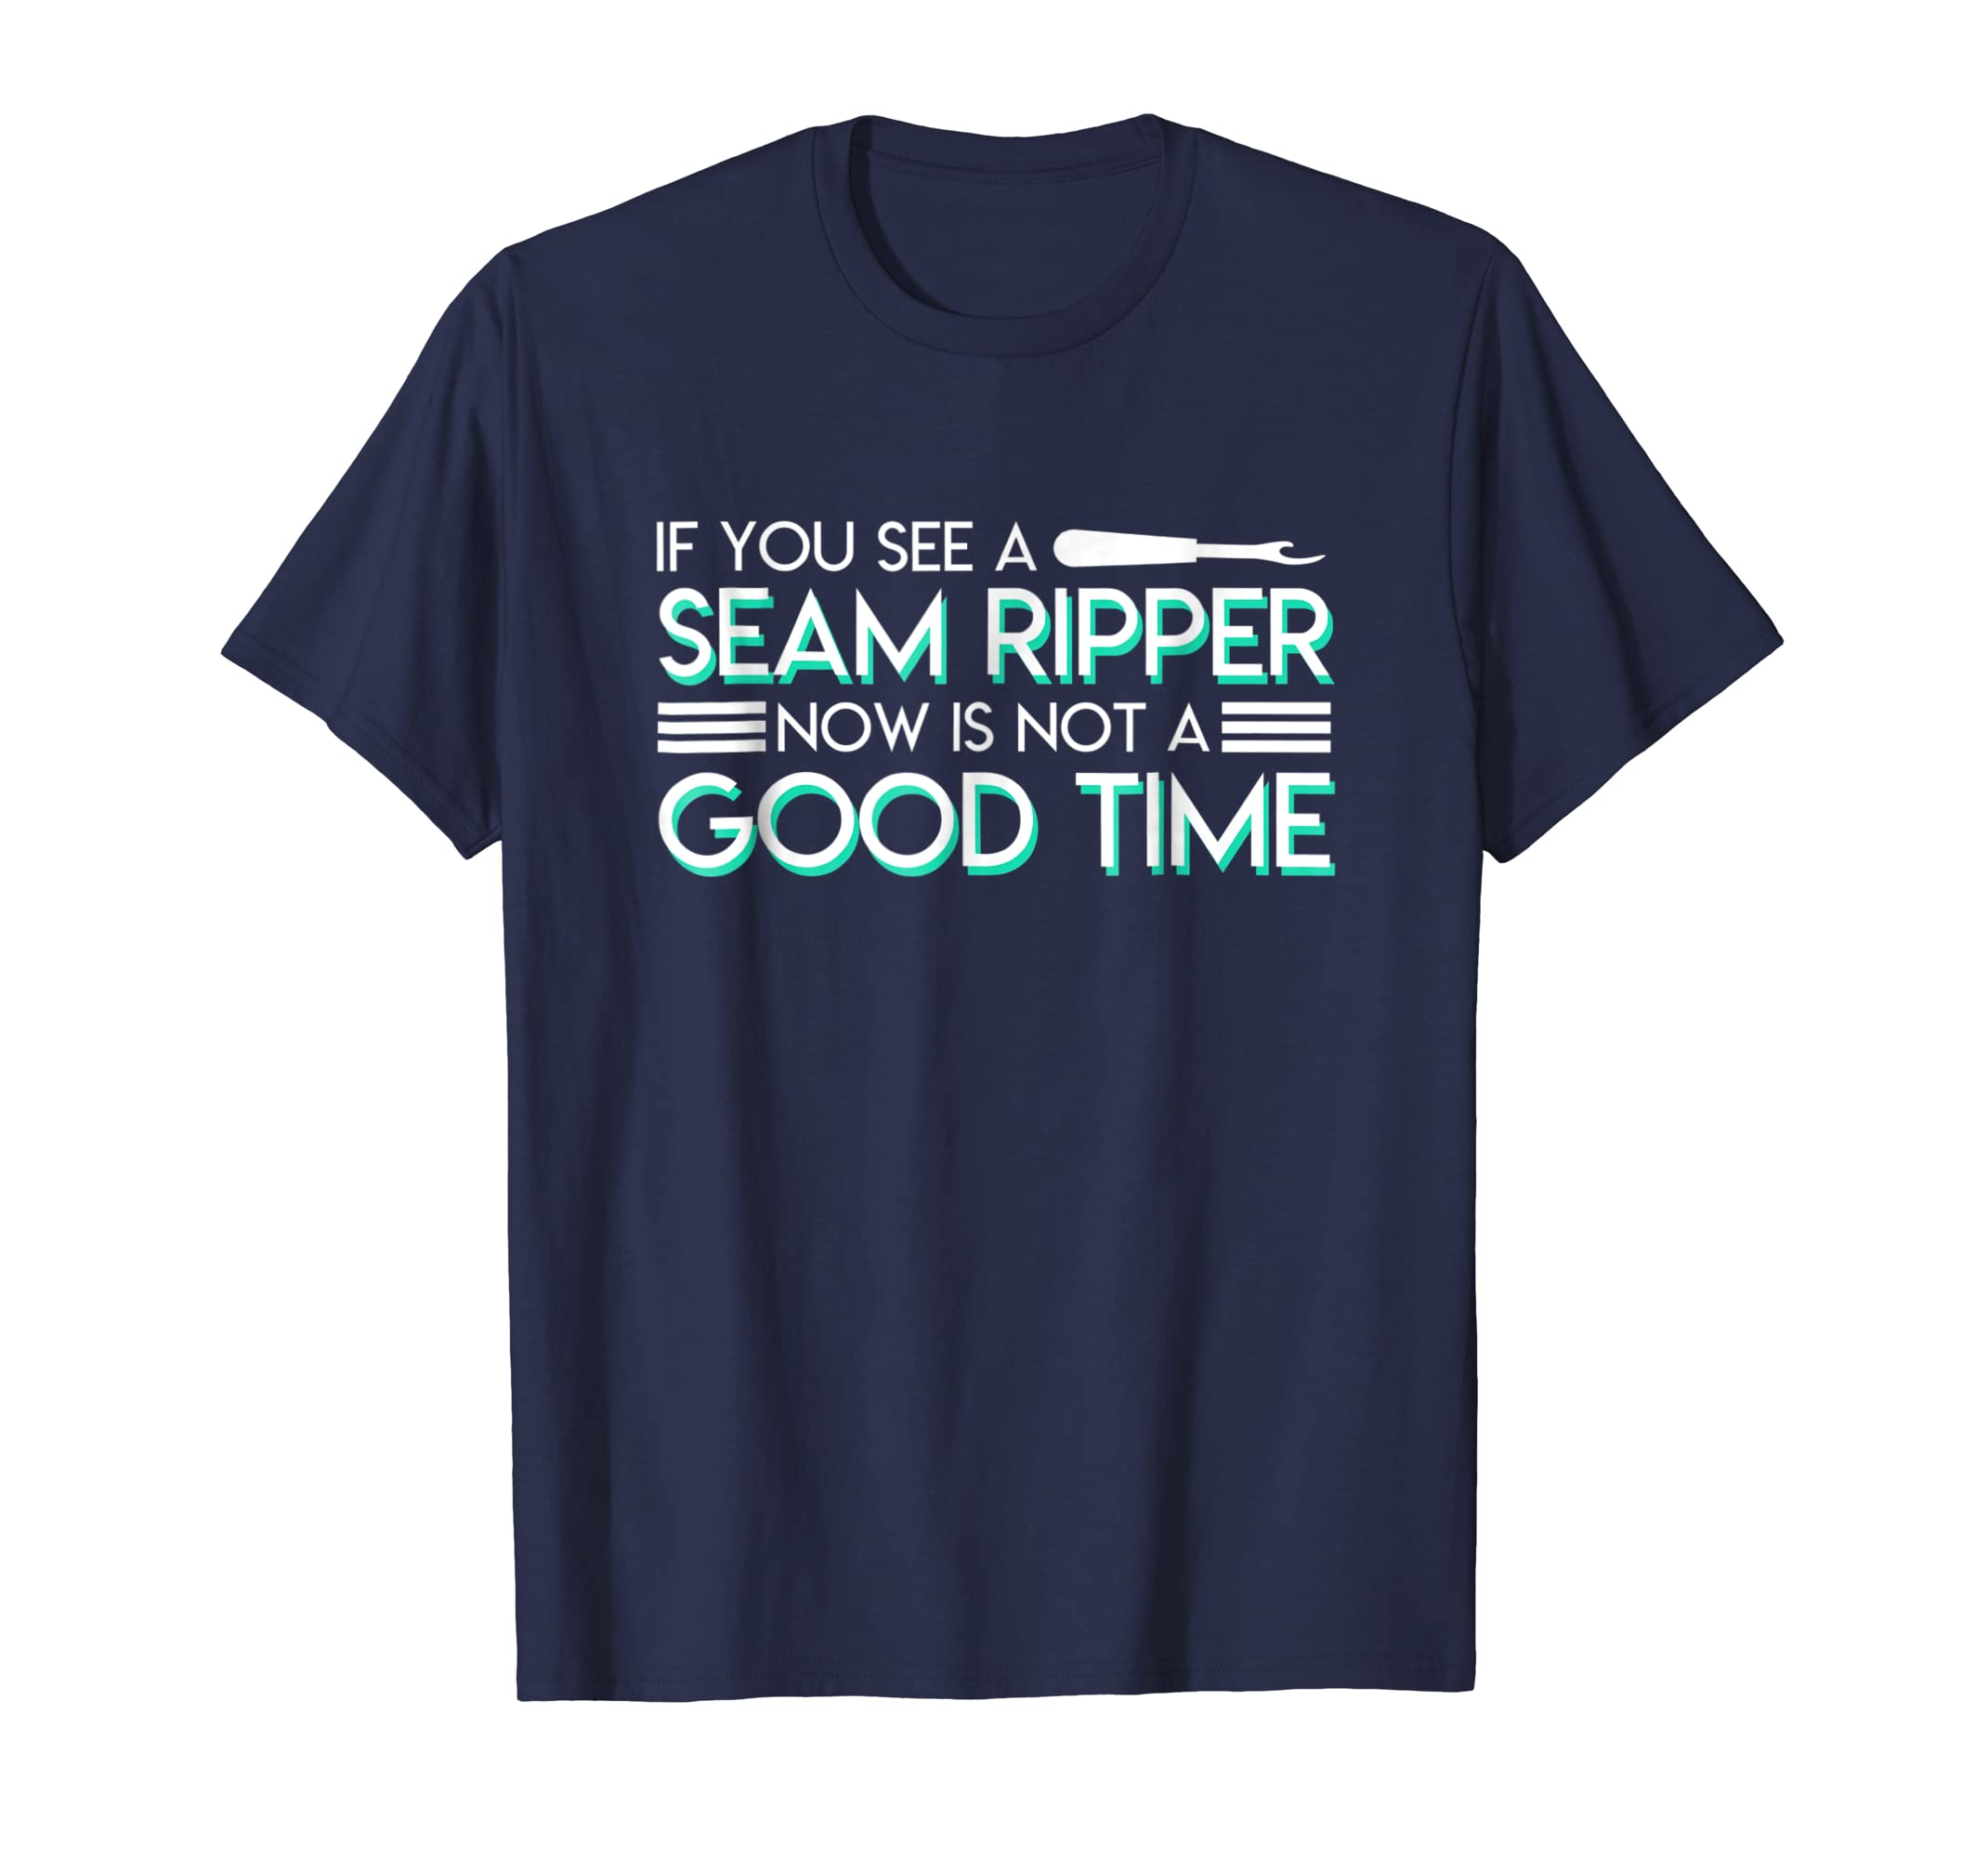 If You See A Seam Ripper Now Is Not A Good Time Sewing Sewing saying funny t shirt